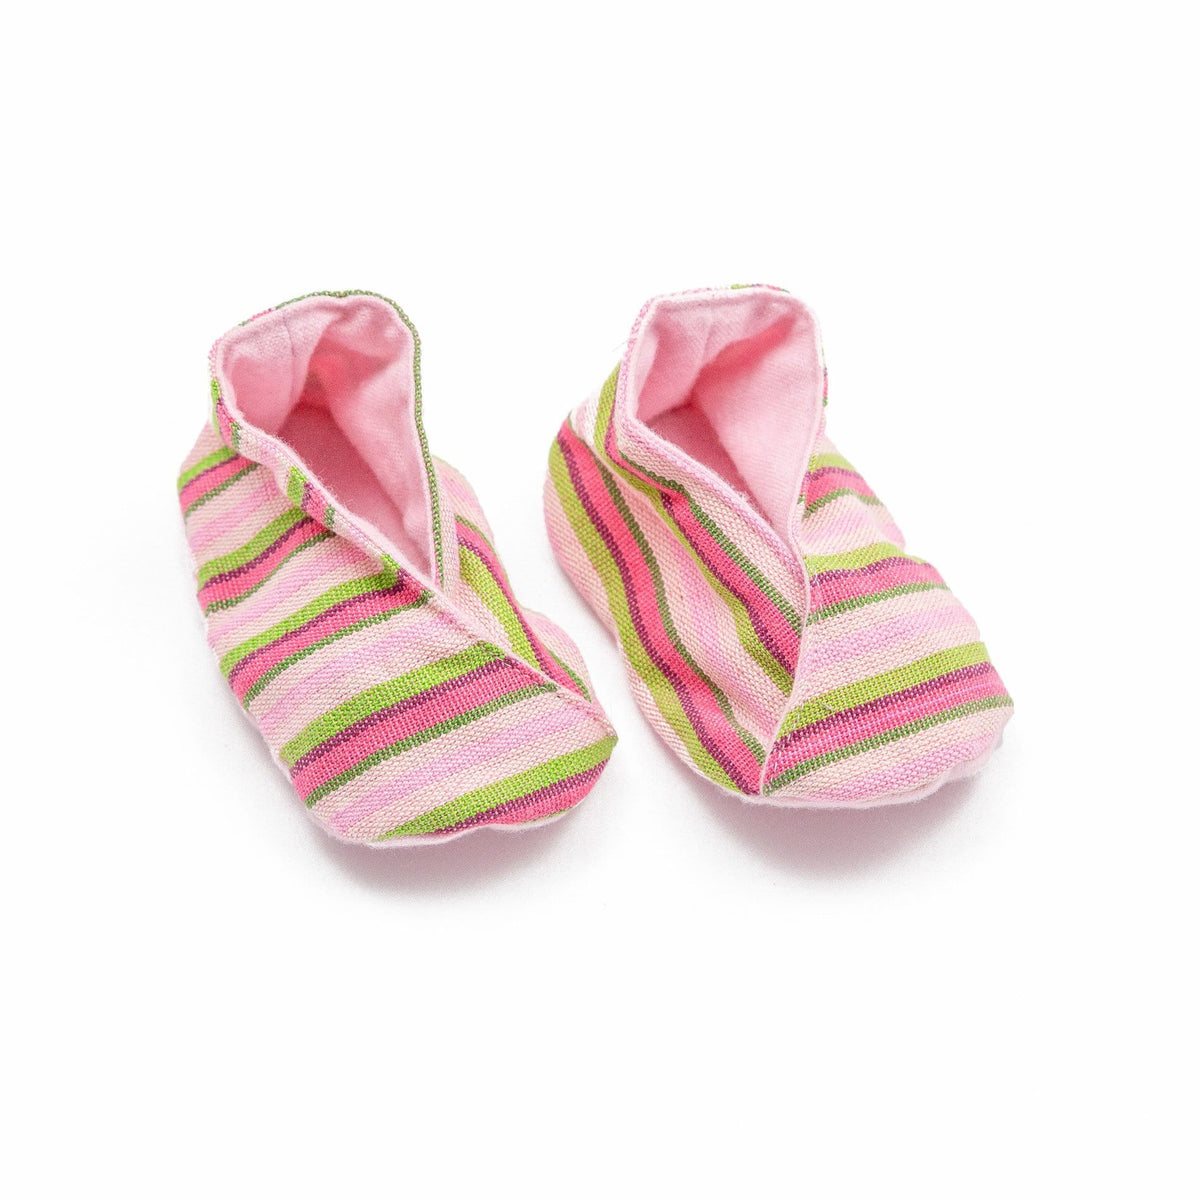 Fair Trade Handwoven Baby Booties Pink